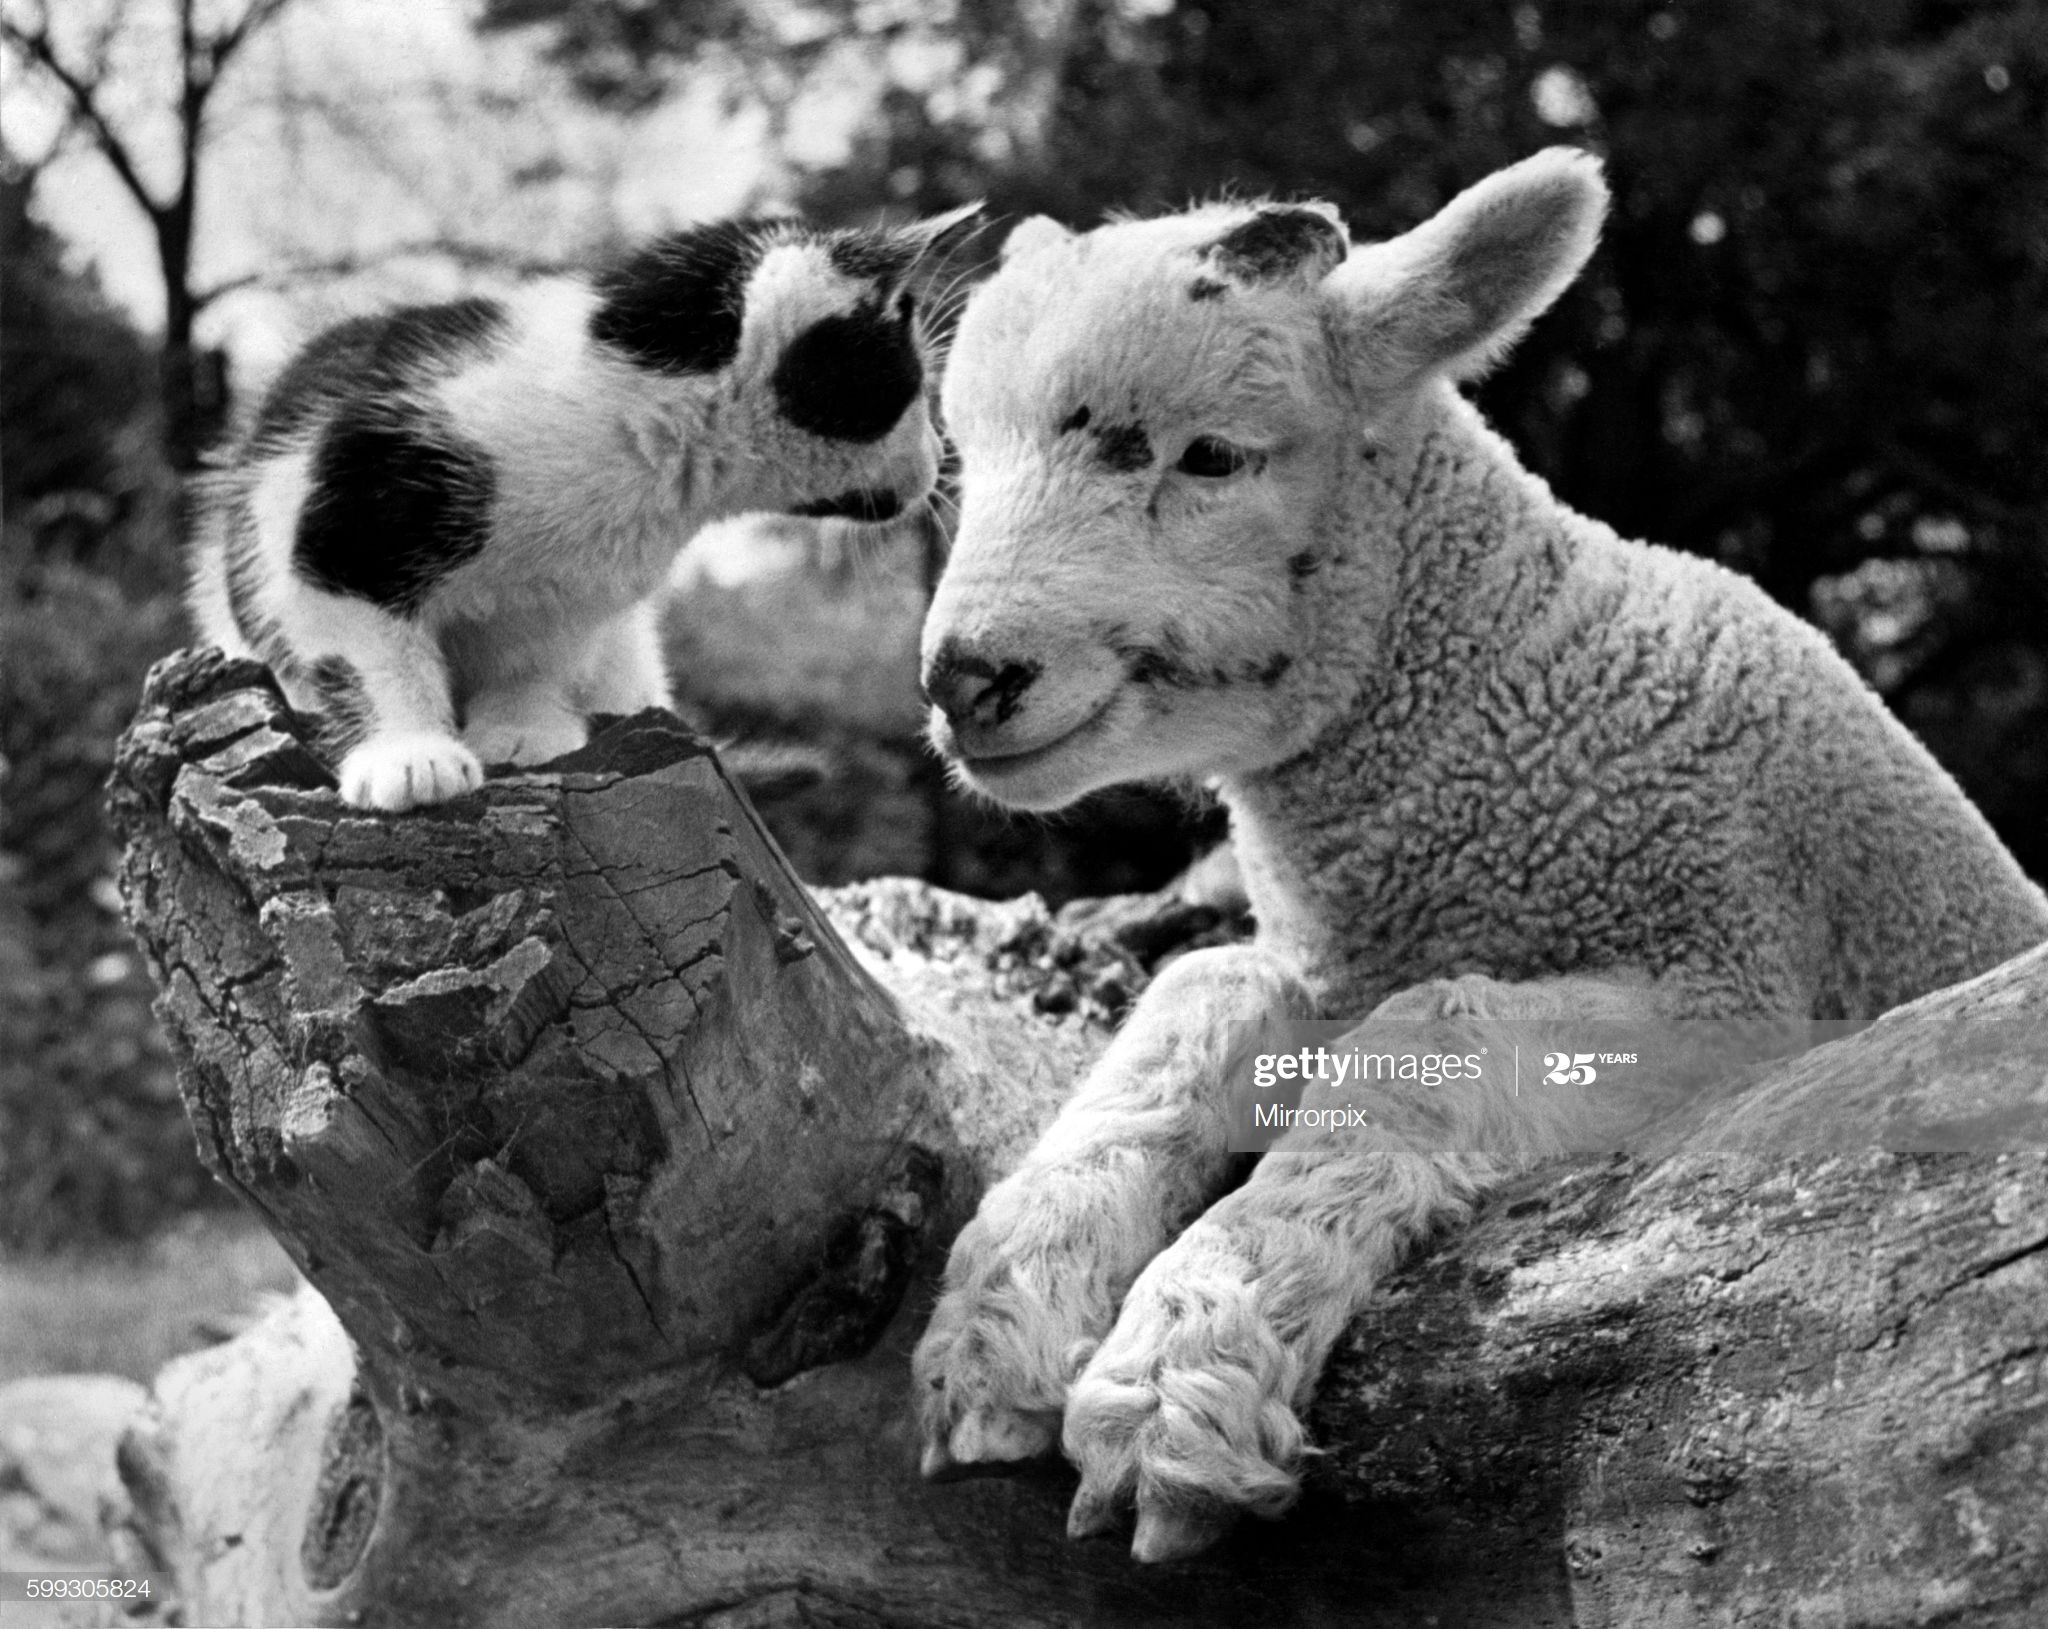 Animals Kitten And Lamb At Chessington Zoo September 1948 P000748 In 2020 With Images Chessington Zoo Kittens Animals